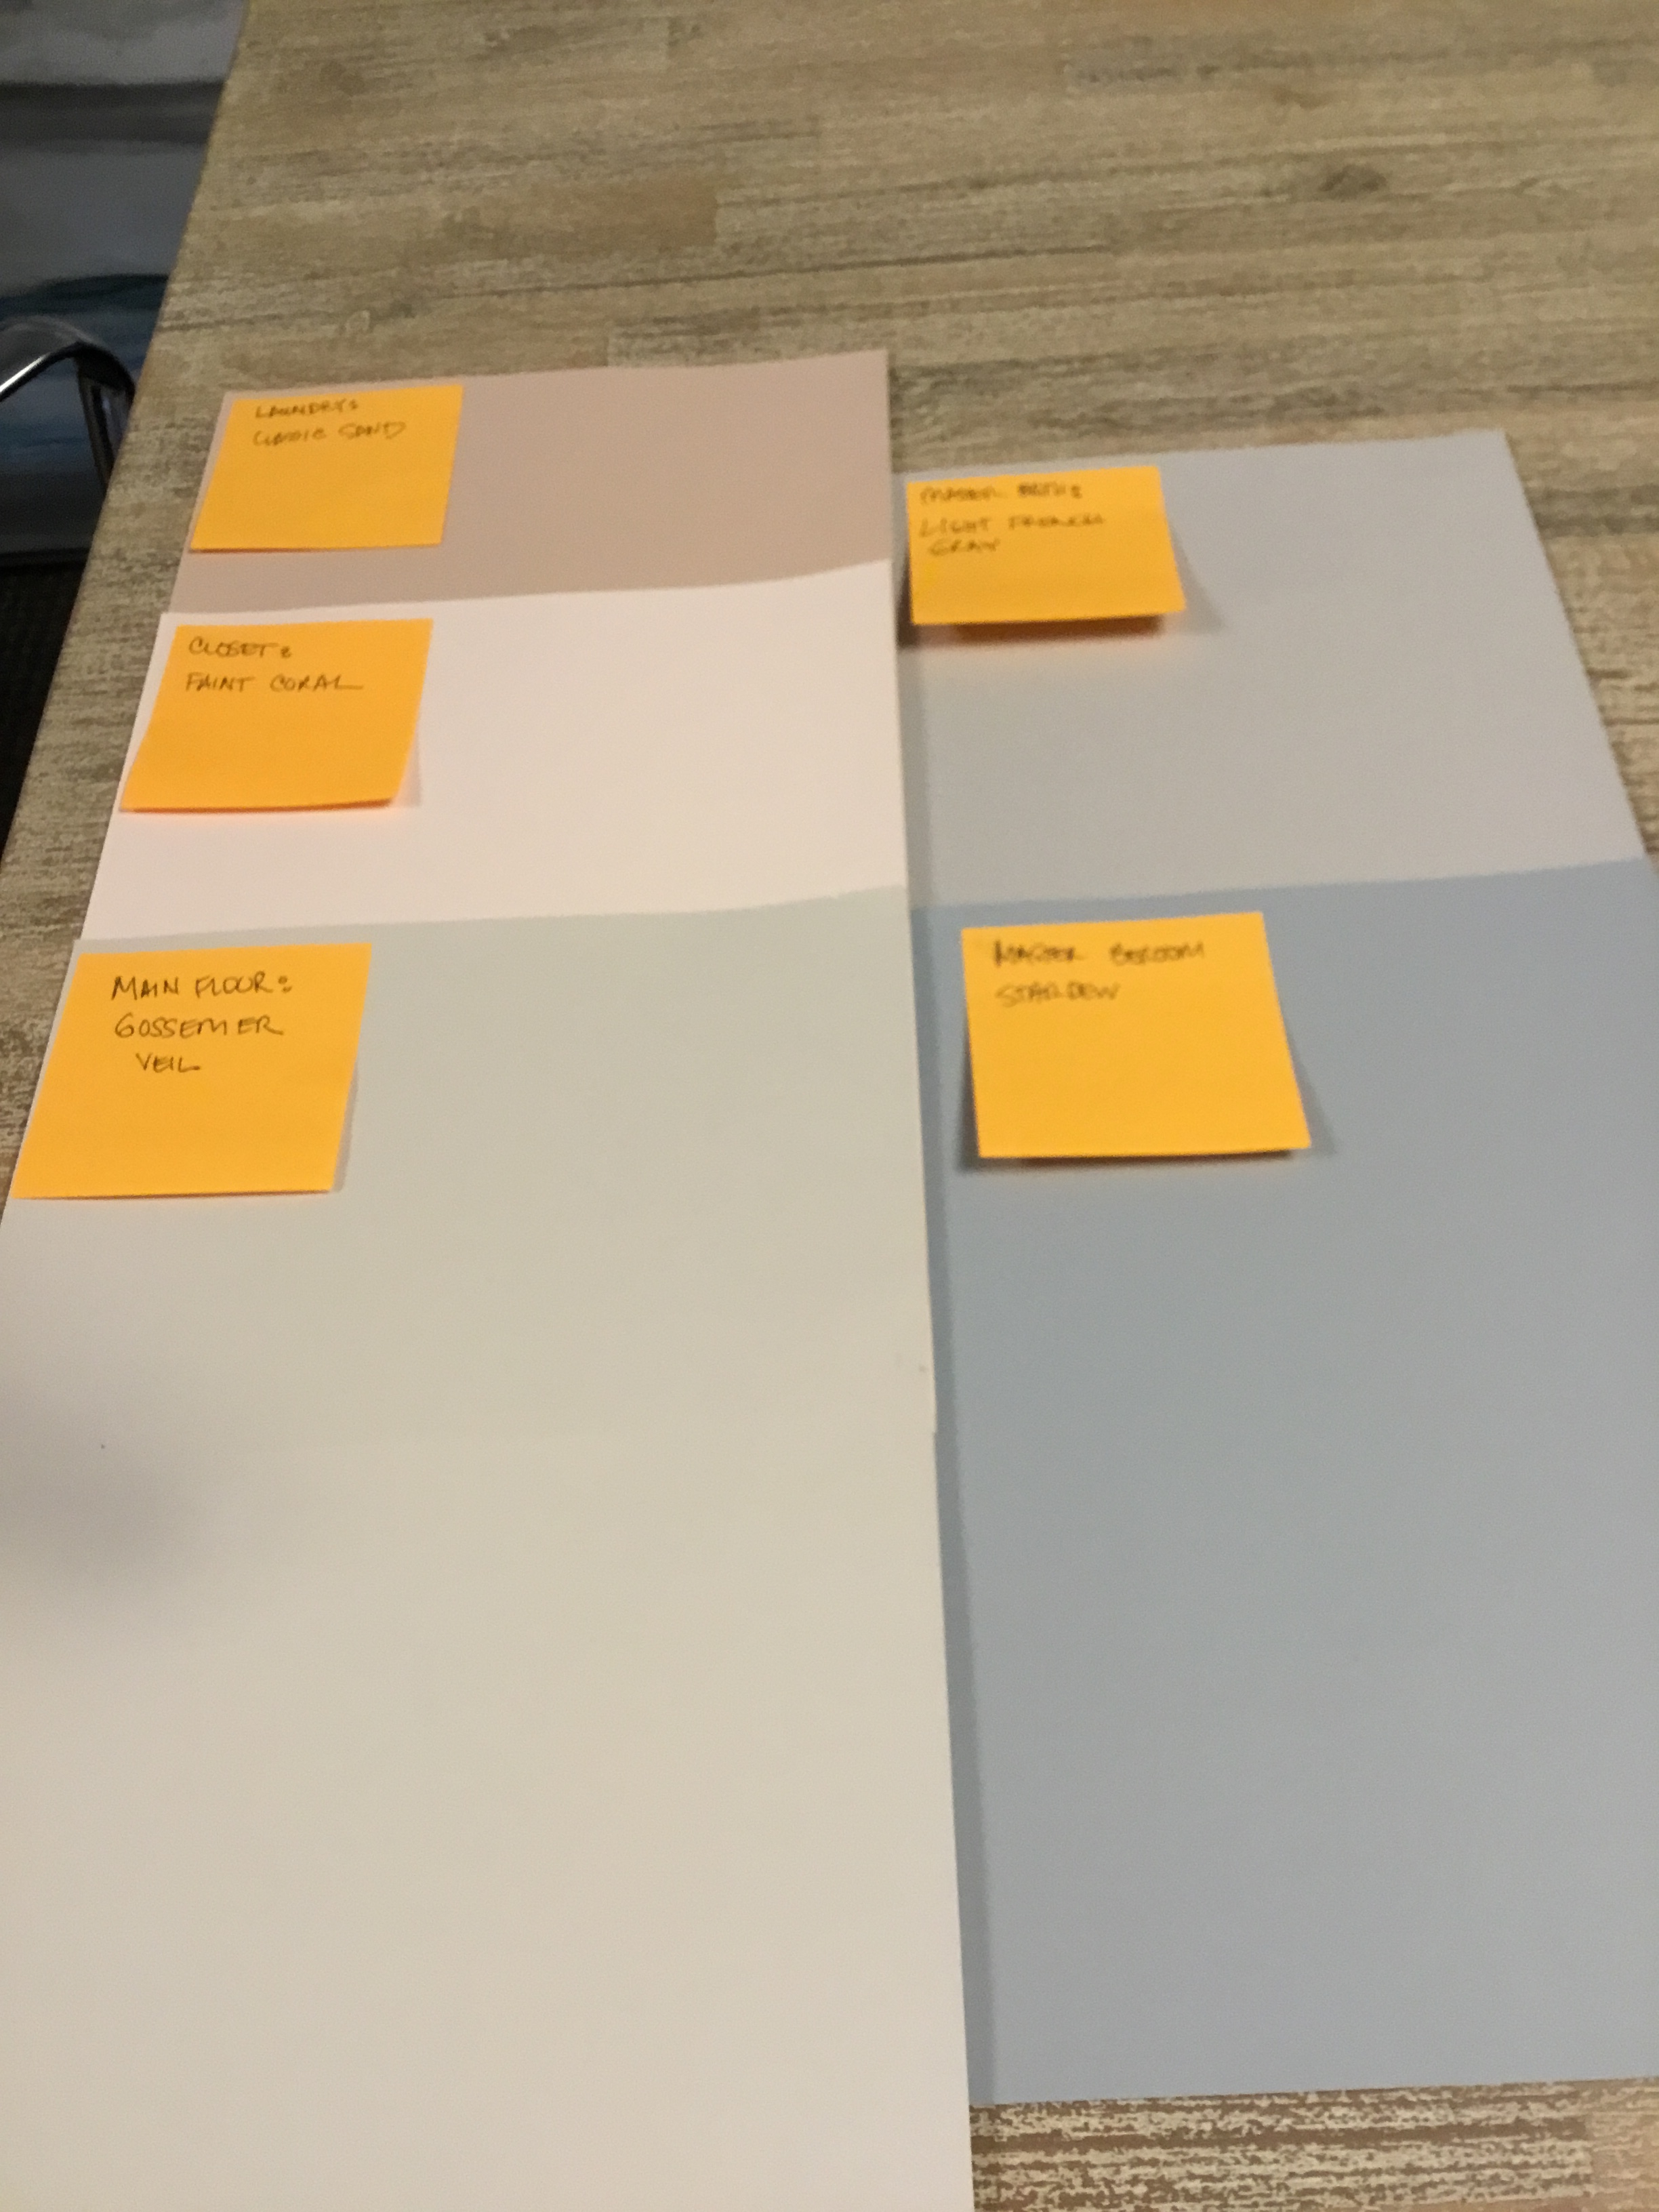 Paint colors for the main floor.